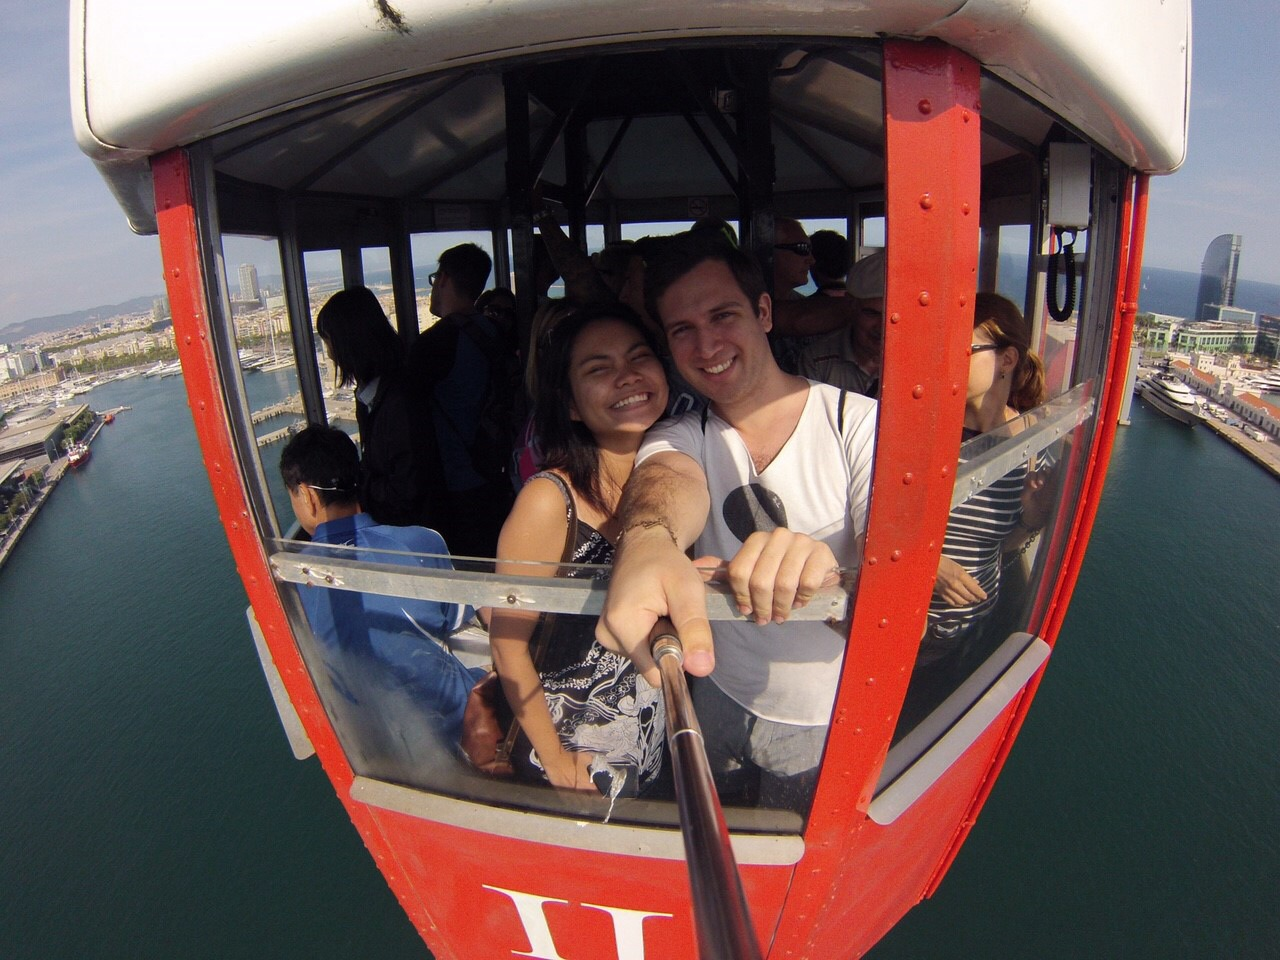 (Barcelona Cable Car) Traveling Abroad bringing new sights.